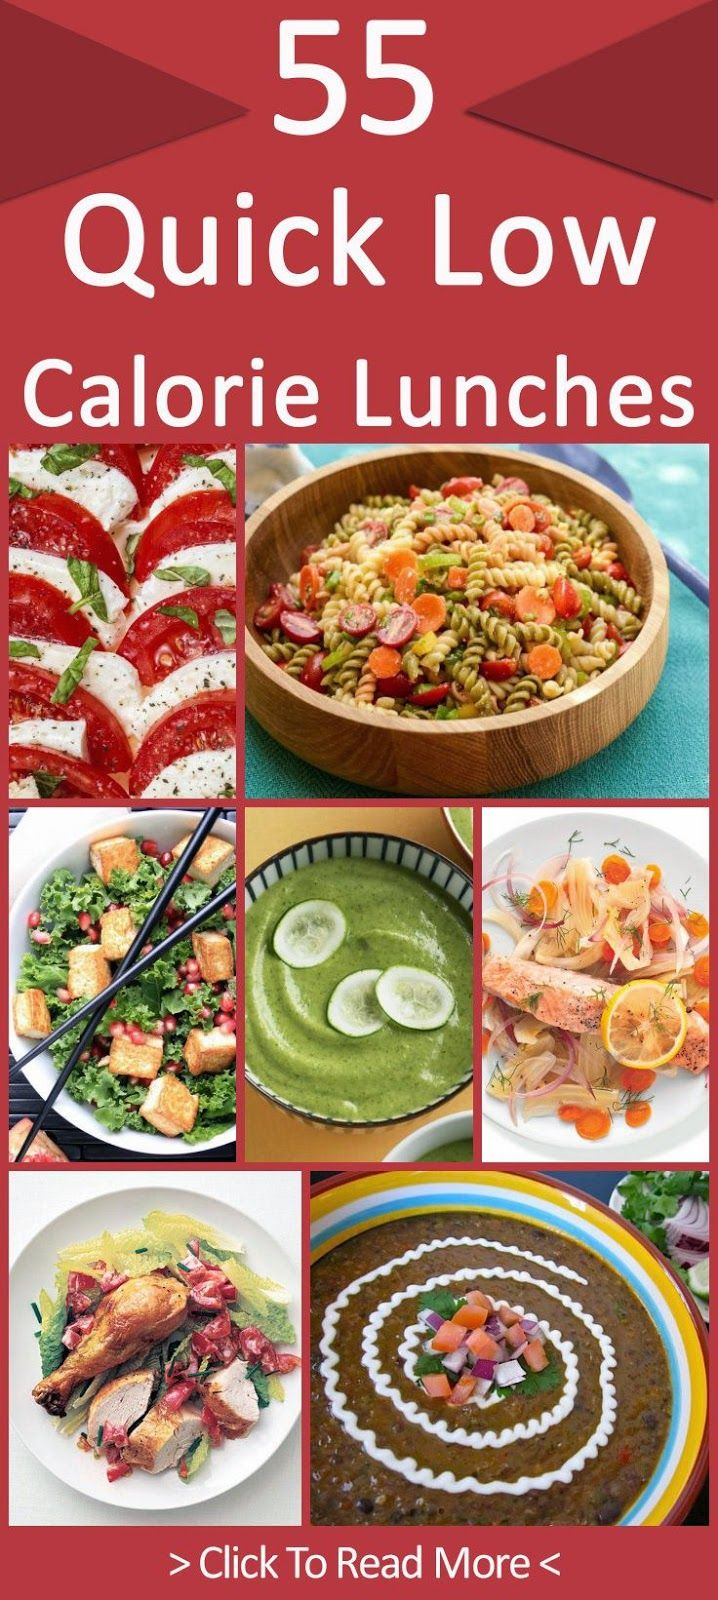 55 quick low calorie lunches best recipes ever diet food detox 55 quick low calorie lunches best recipes ever 300 calorie luncheslow calorie smoothieshealthy indian foodindian forumfinder Images